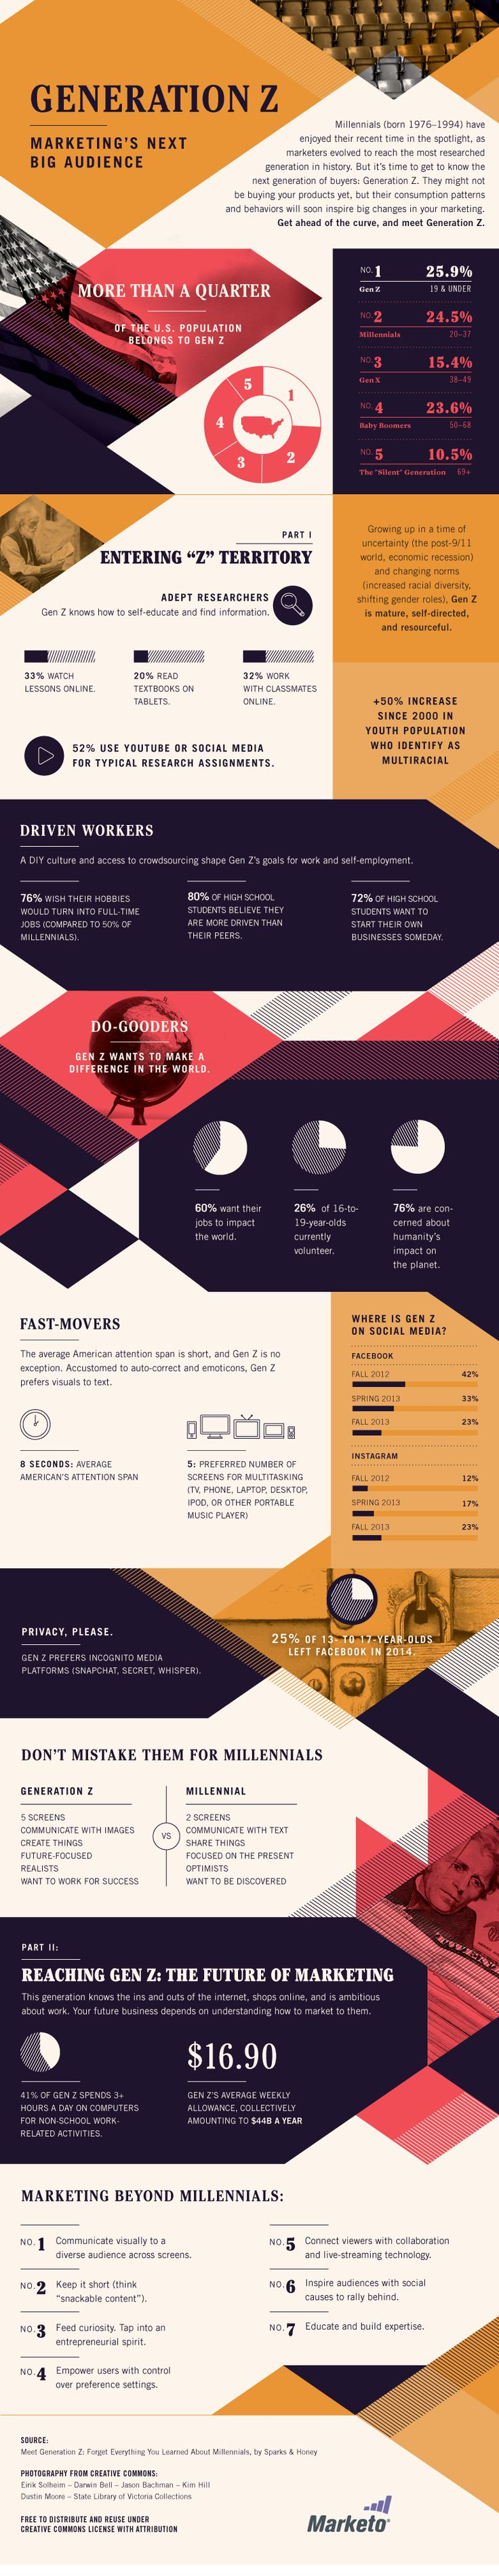 How to Reach Your Next Big Customer: Generation Z (Infographic) | Inc.com